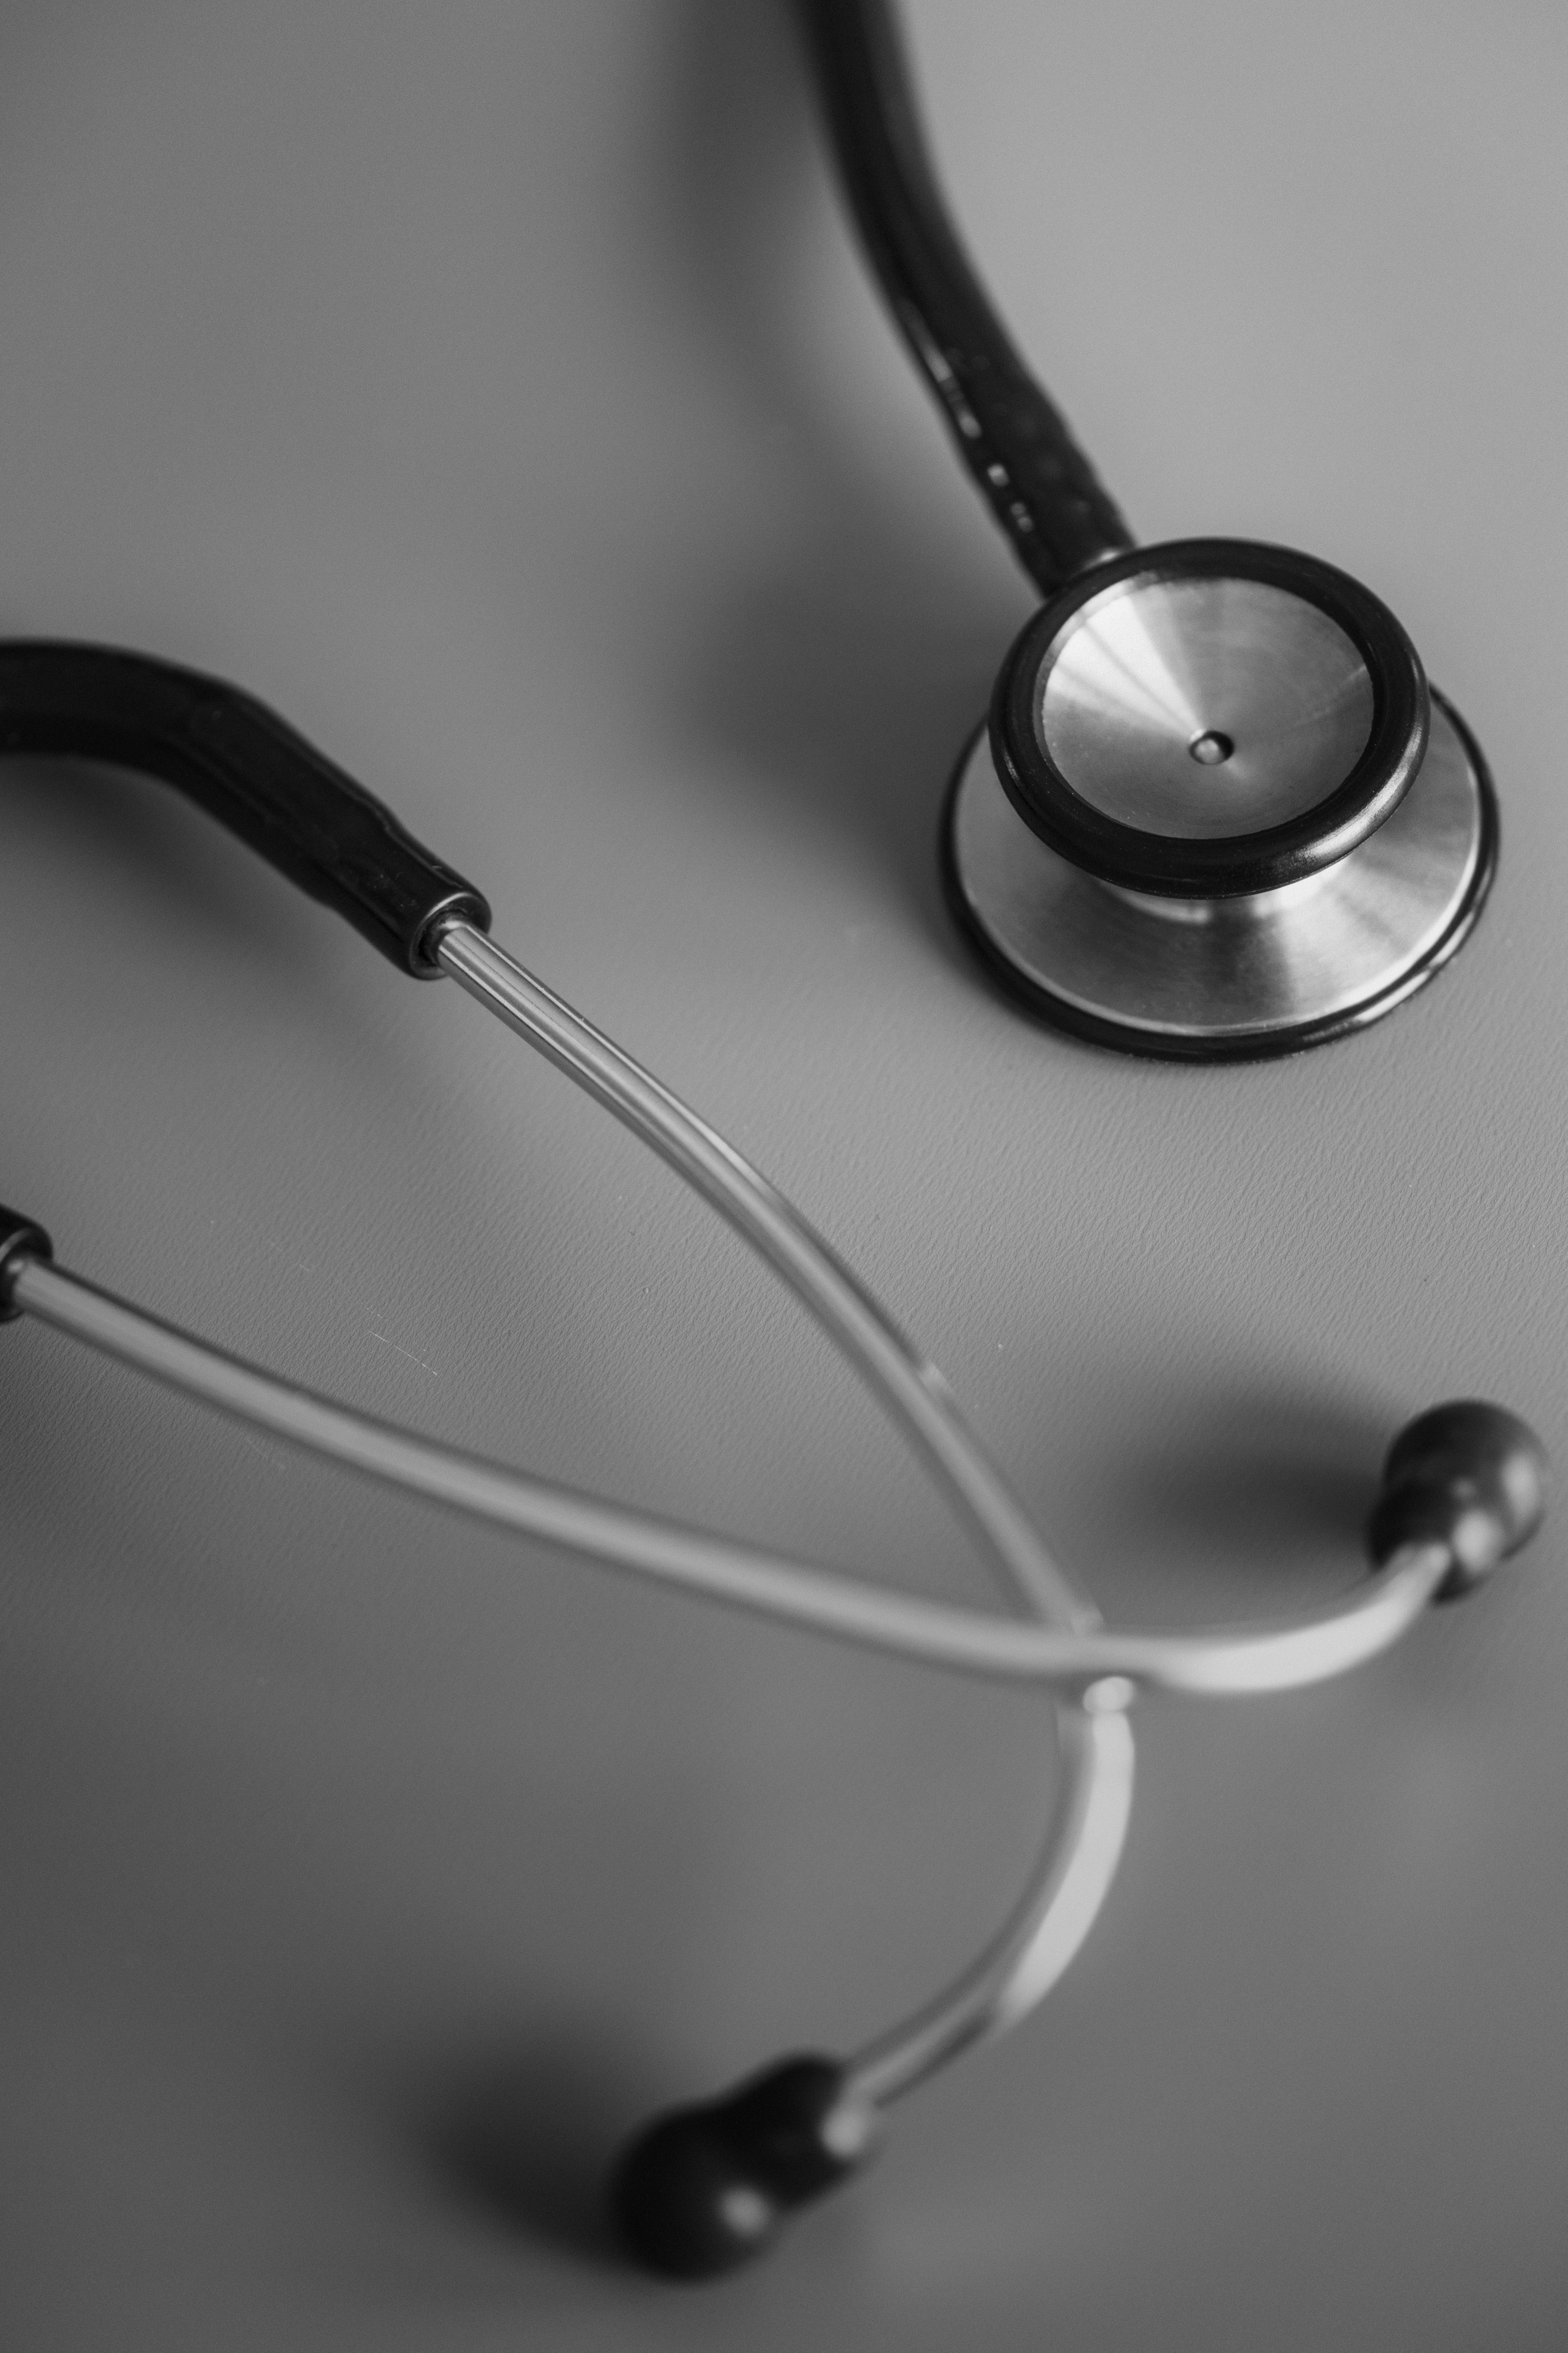 Gray and Black Stethoscope, Steel, Stethoscope, Tool, Object, HQ Photo